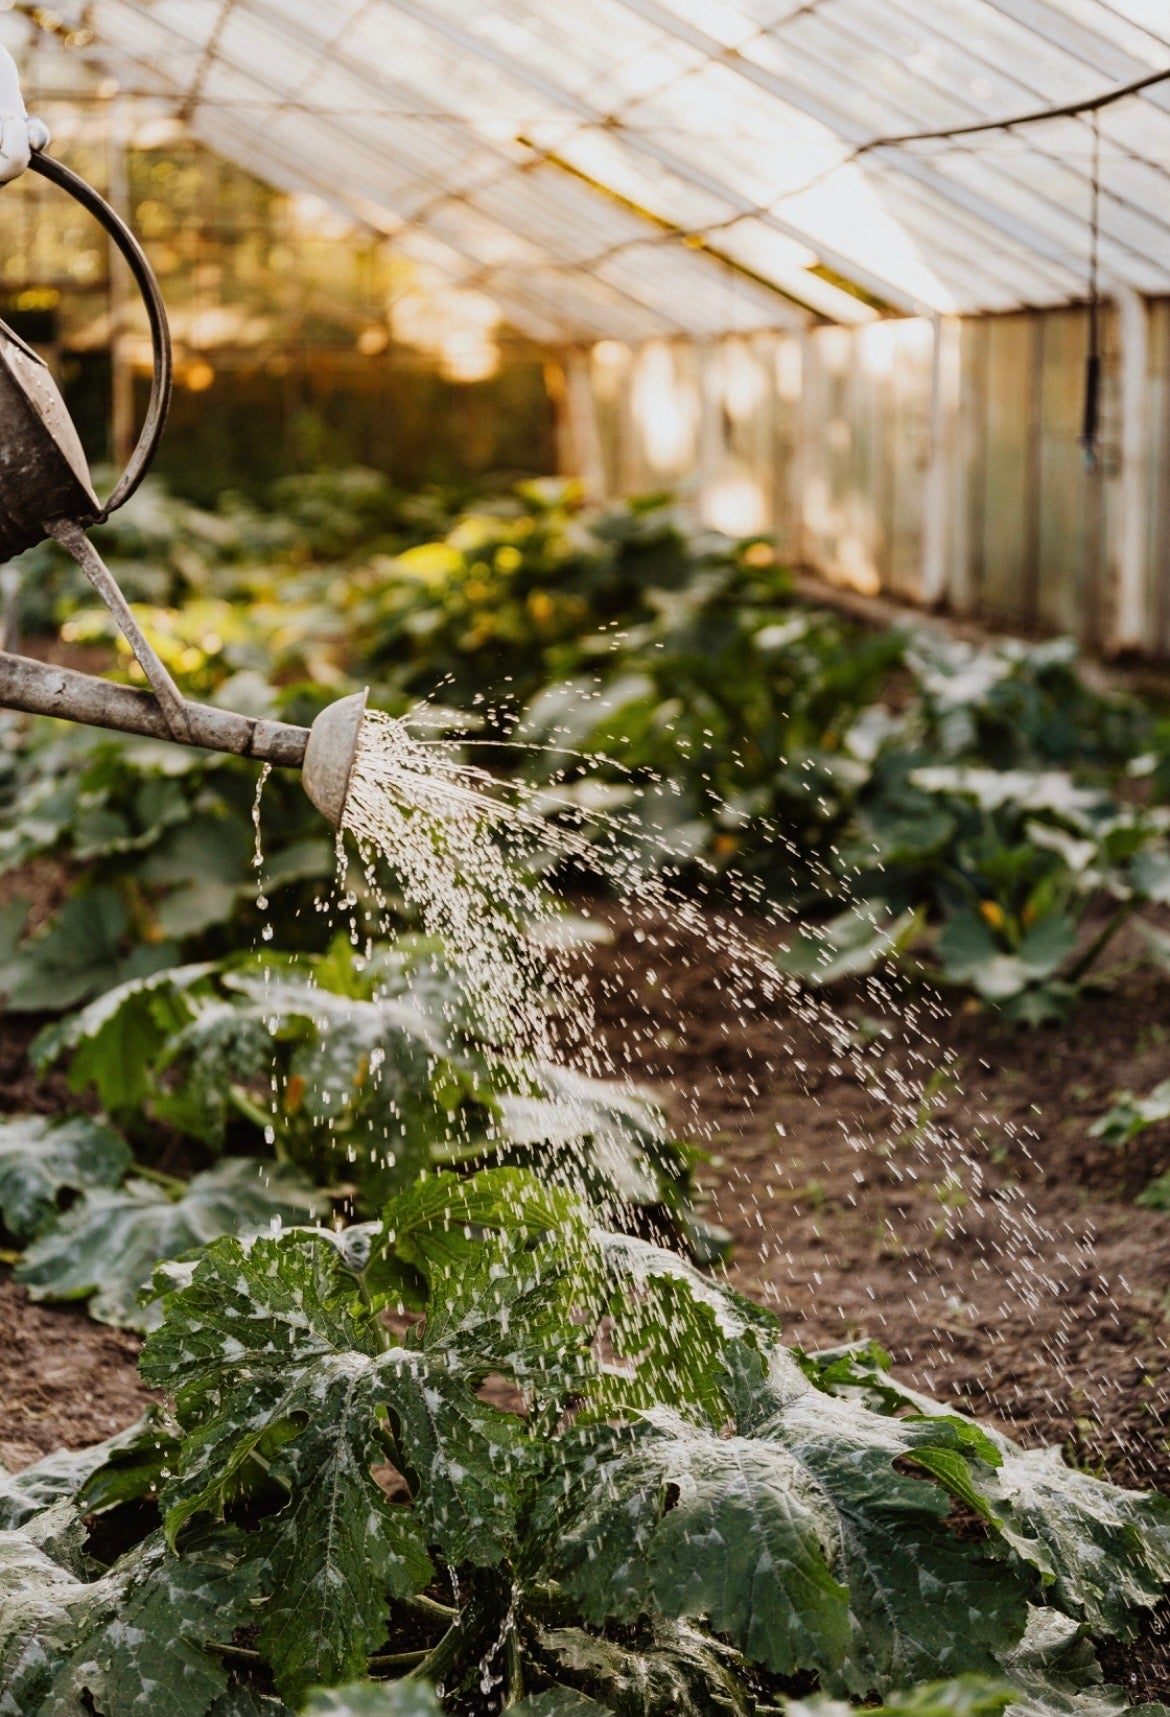 Watering can, watering a green vegetables in a greenhouse